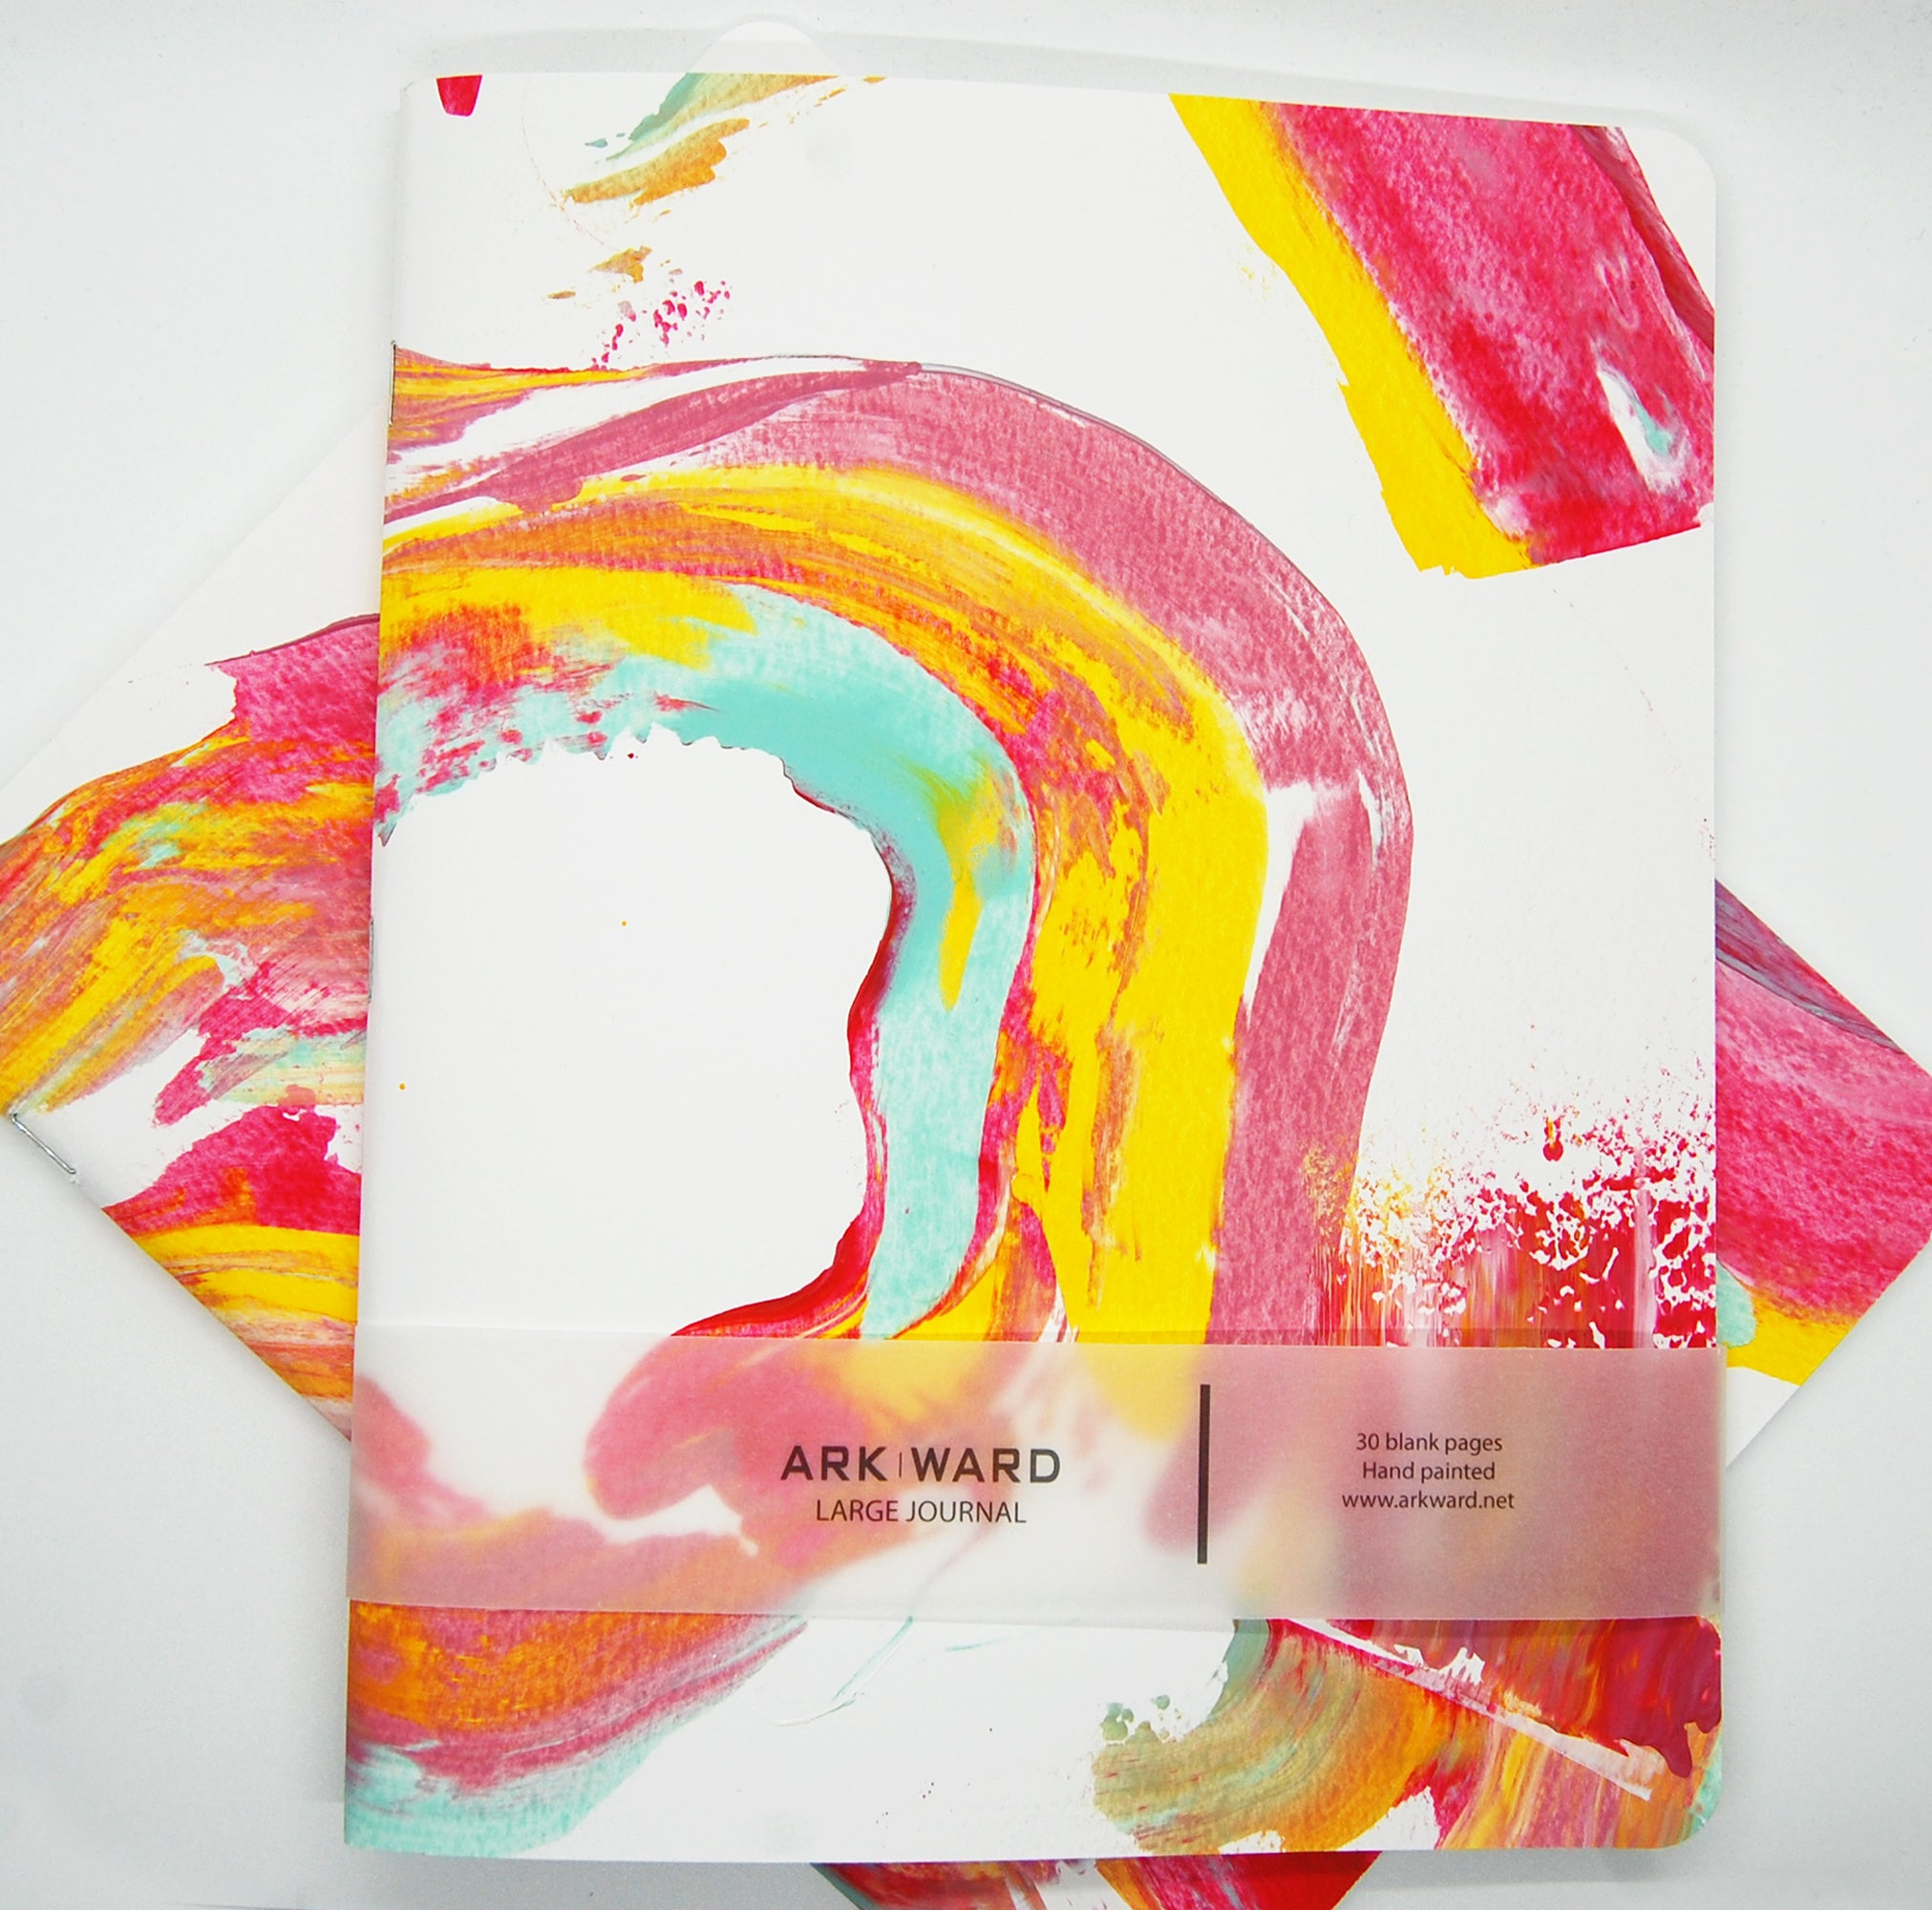 Arkward_Northern Light_Stationery_Journal